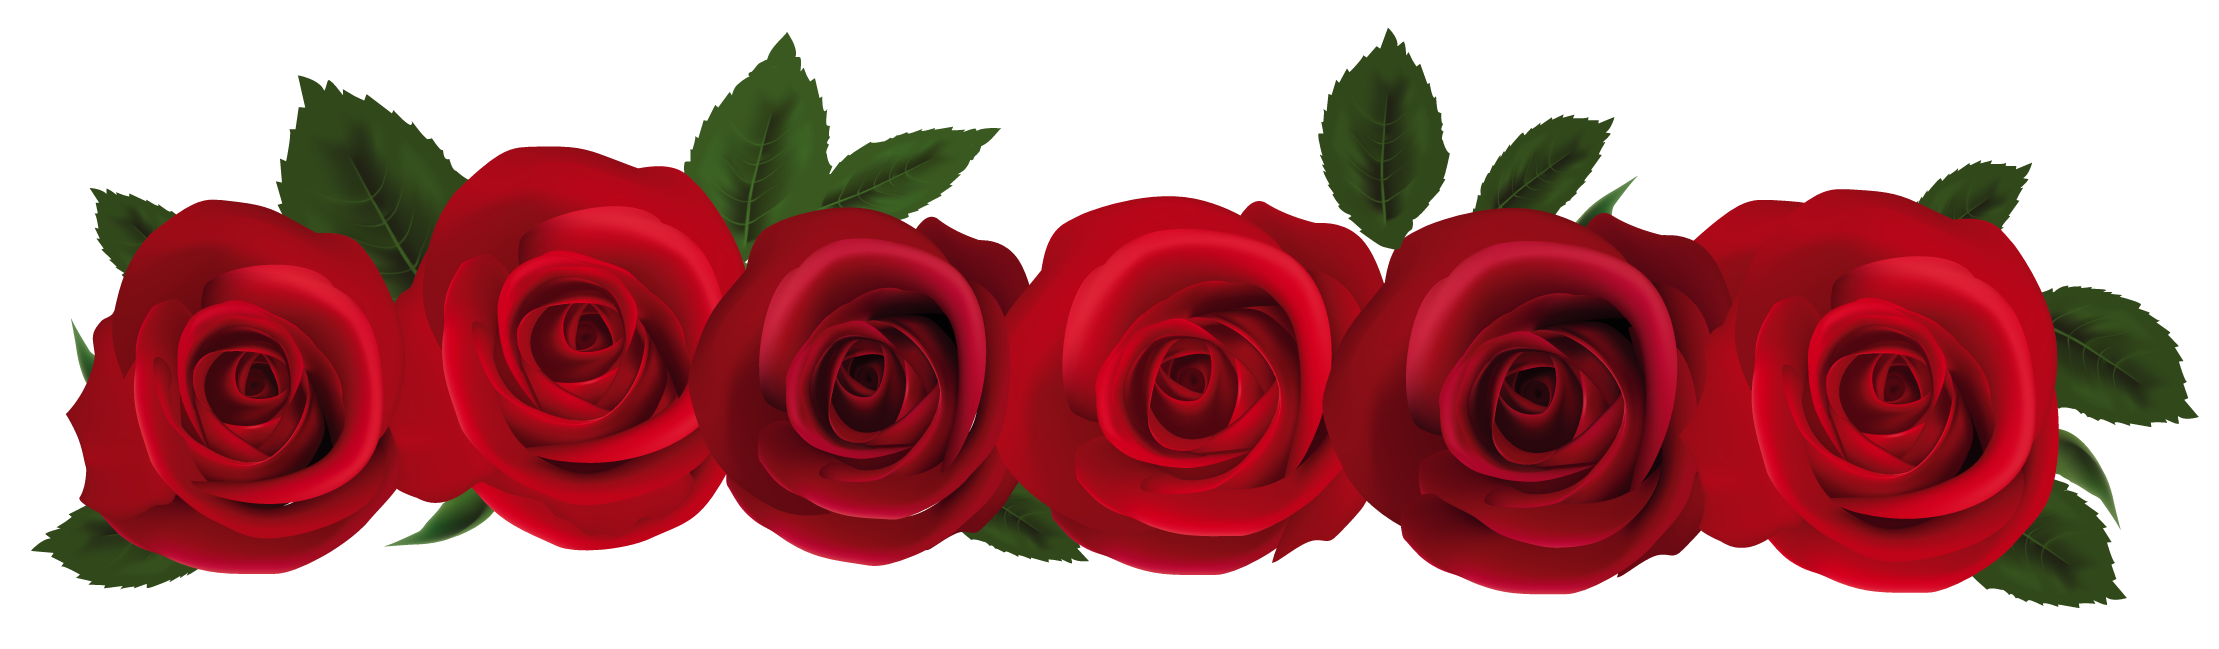 Red roses png gallery. Clipart rose banner